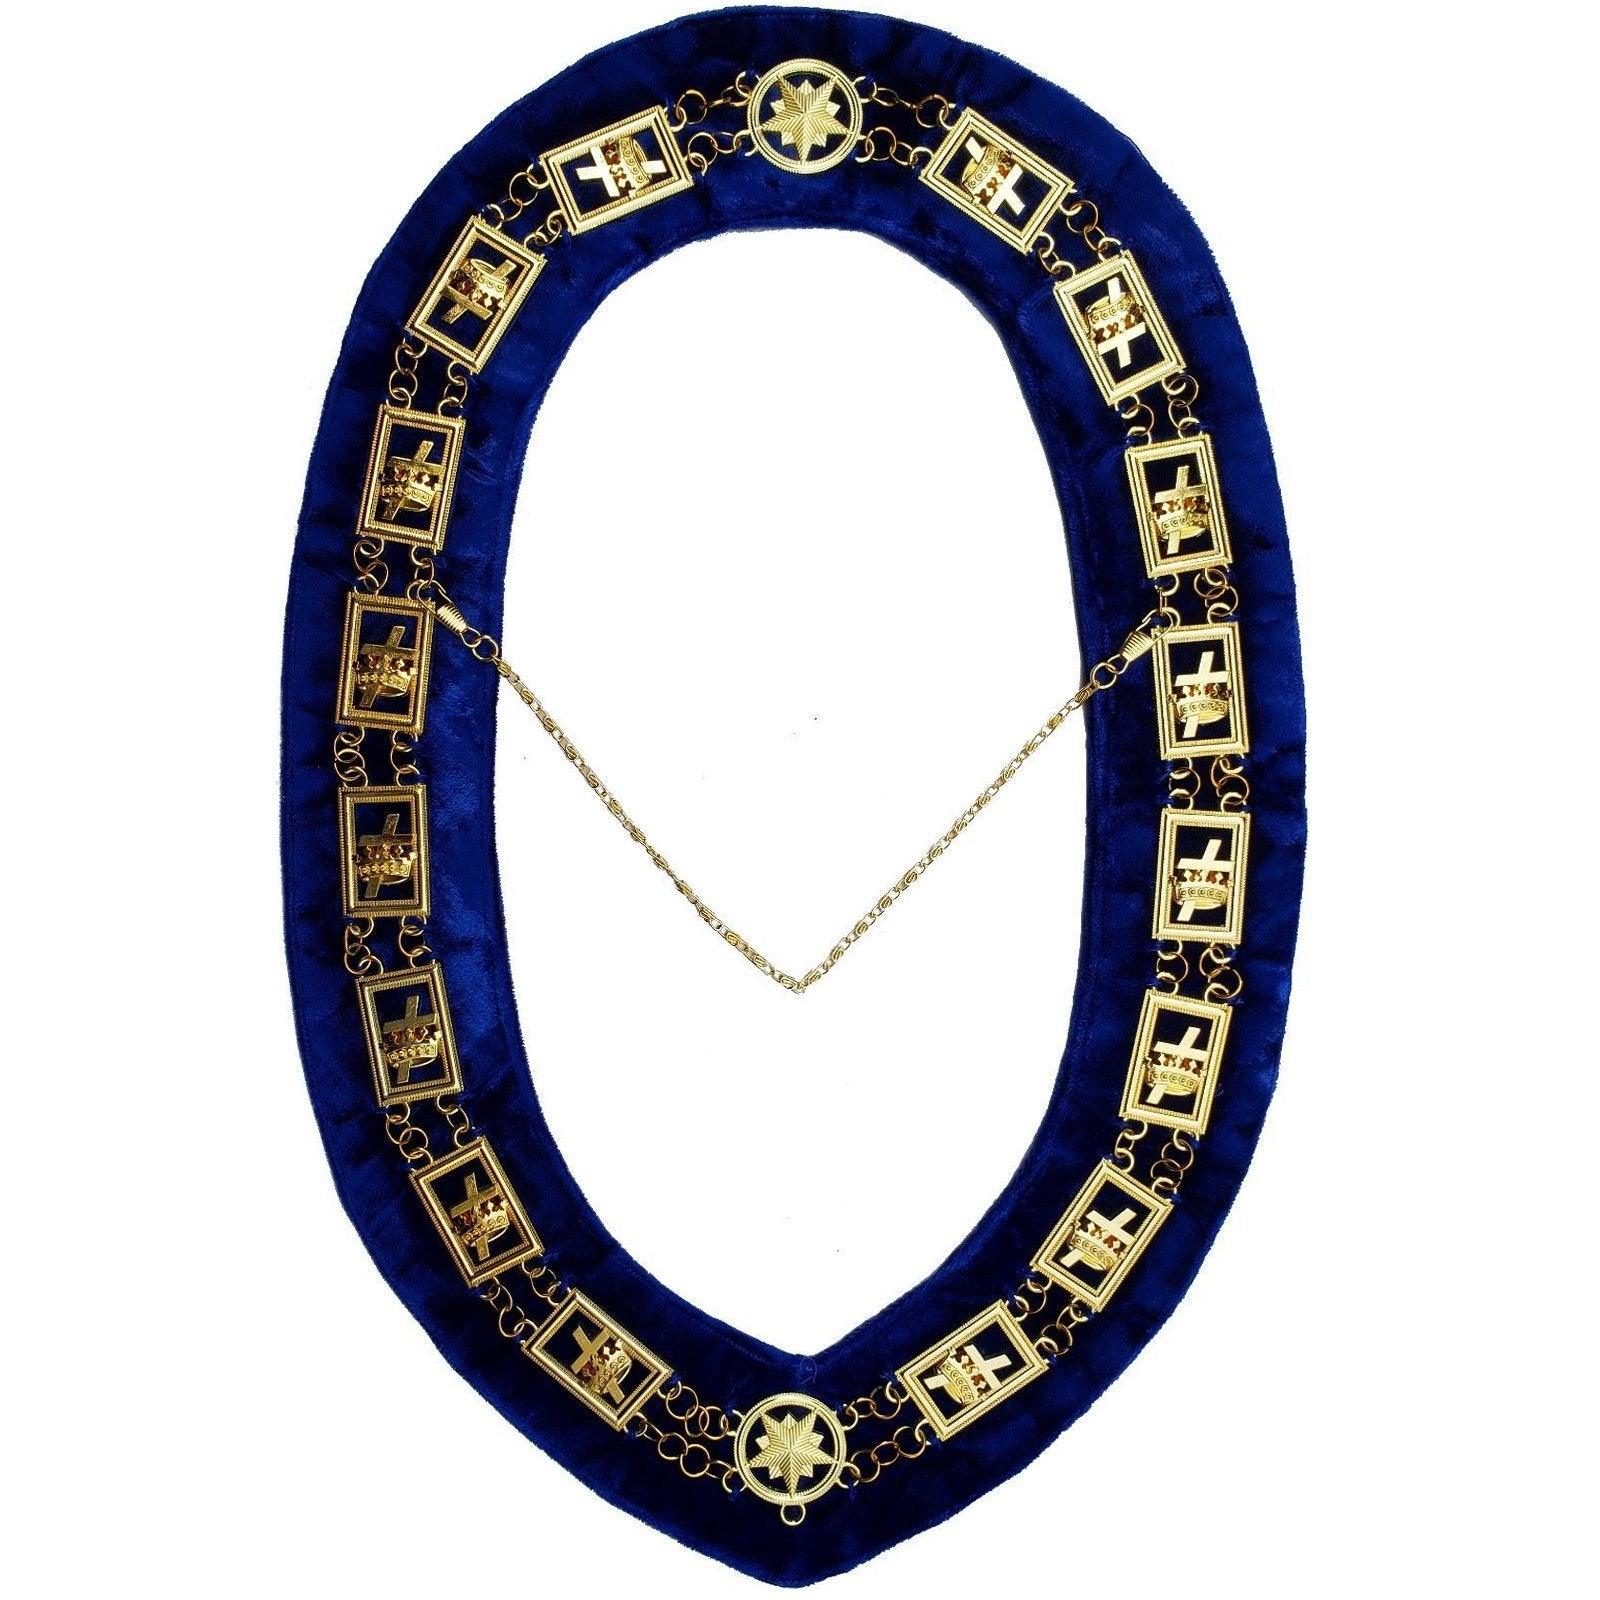 Knights Templar - Masonic Chain Collar - Gold/Silver on Blue + Free Case - Bricks Masons